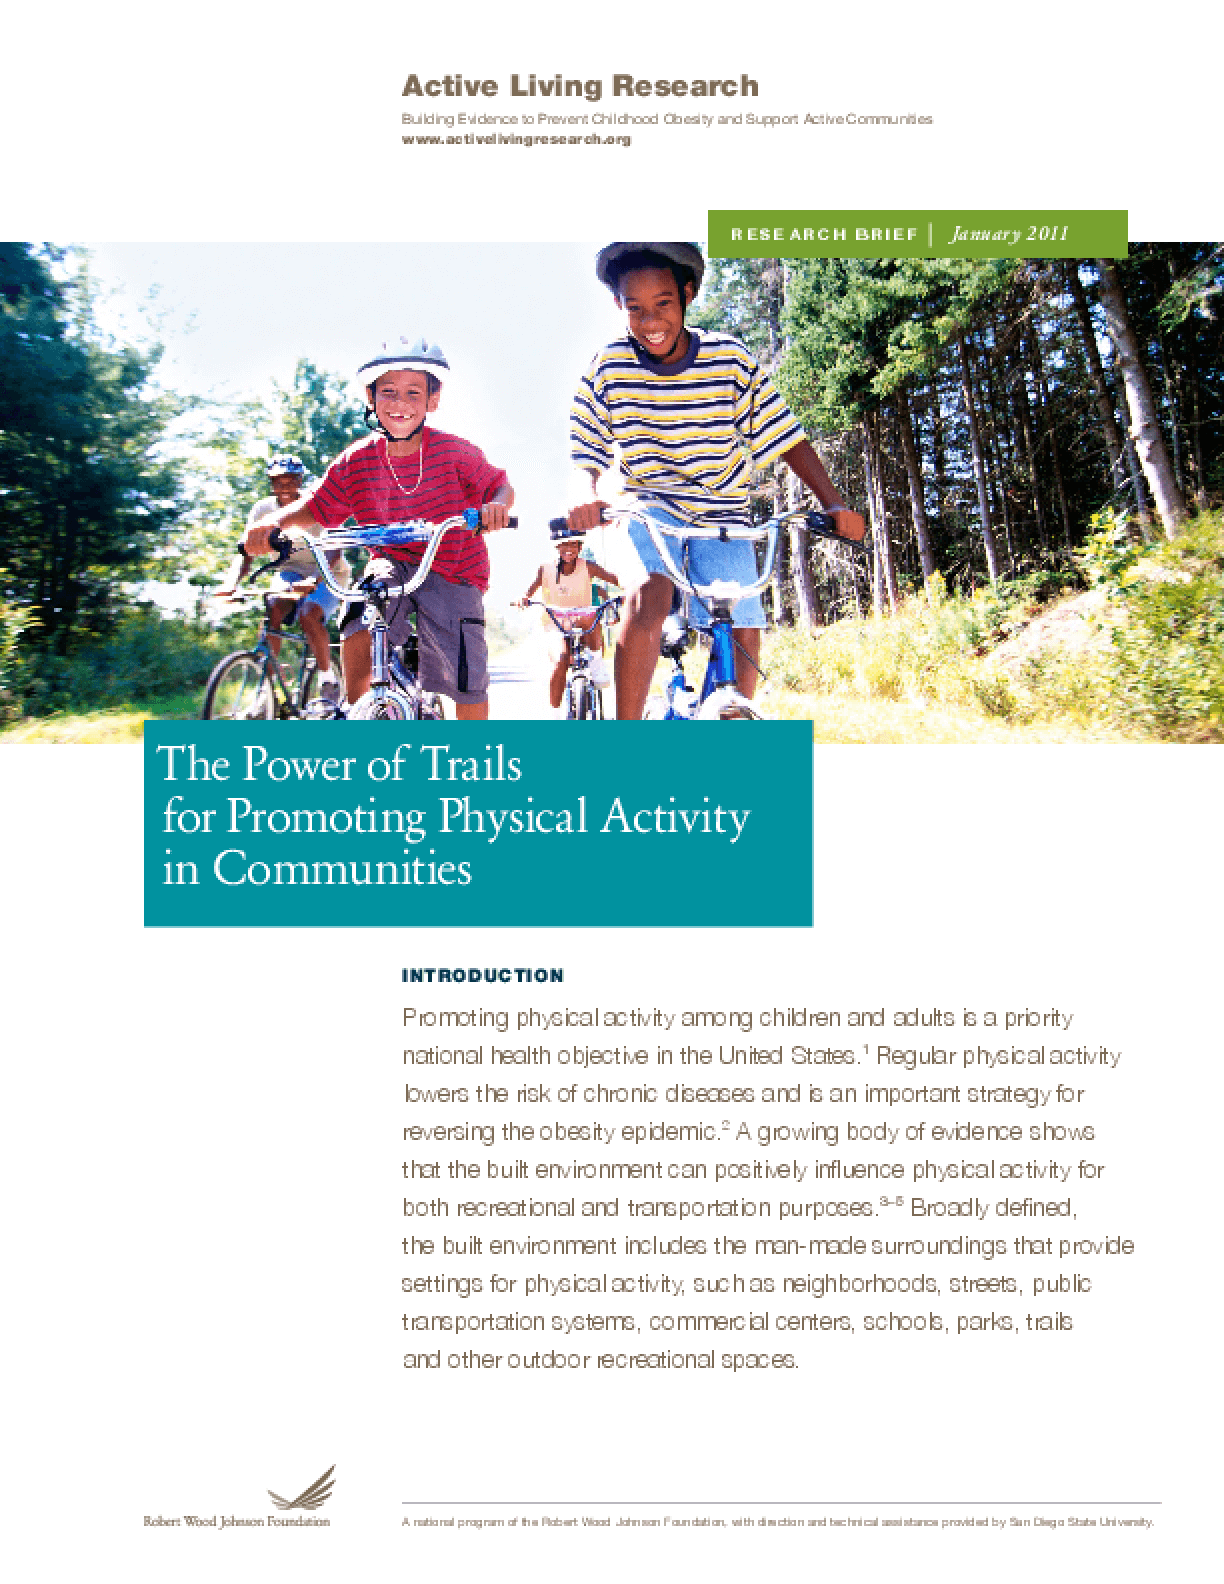 The Power of Trails for Promoting Physical Activity in Communities